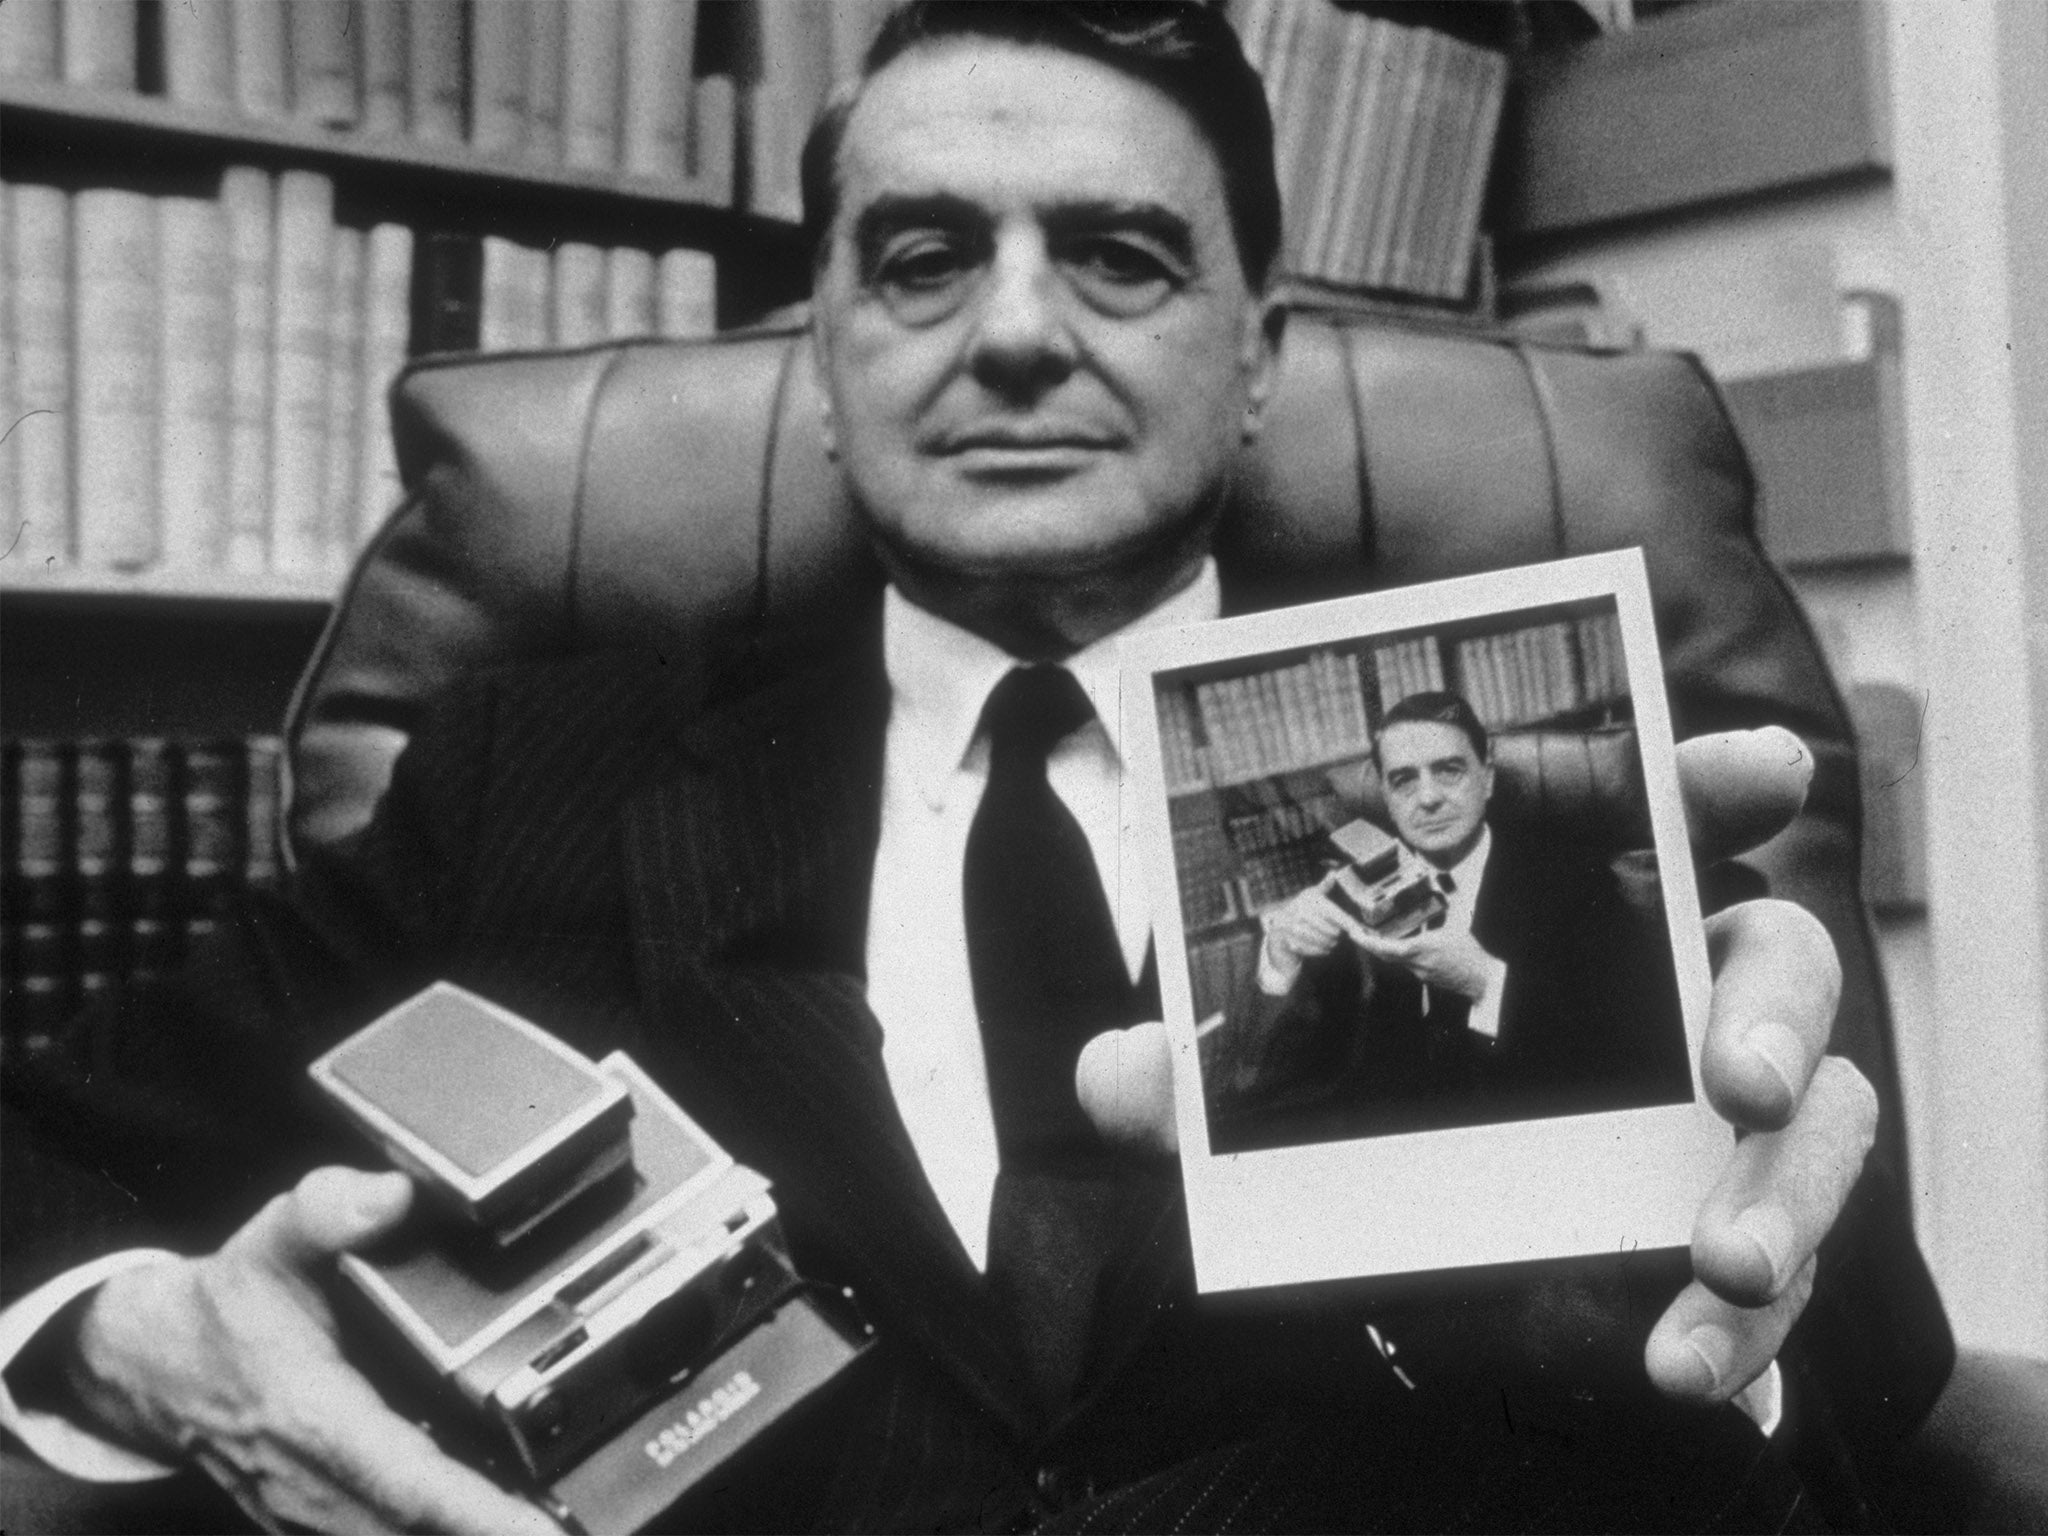 70 years of instant photos, thanks to inventor Edwin Land's Polaroid camera